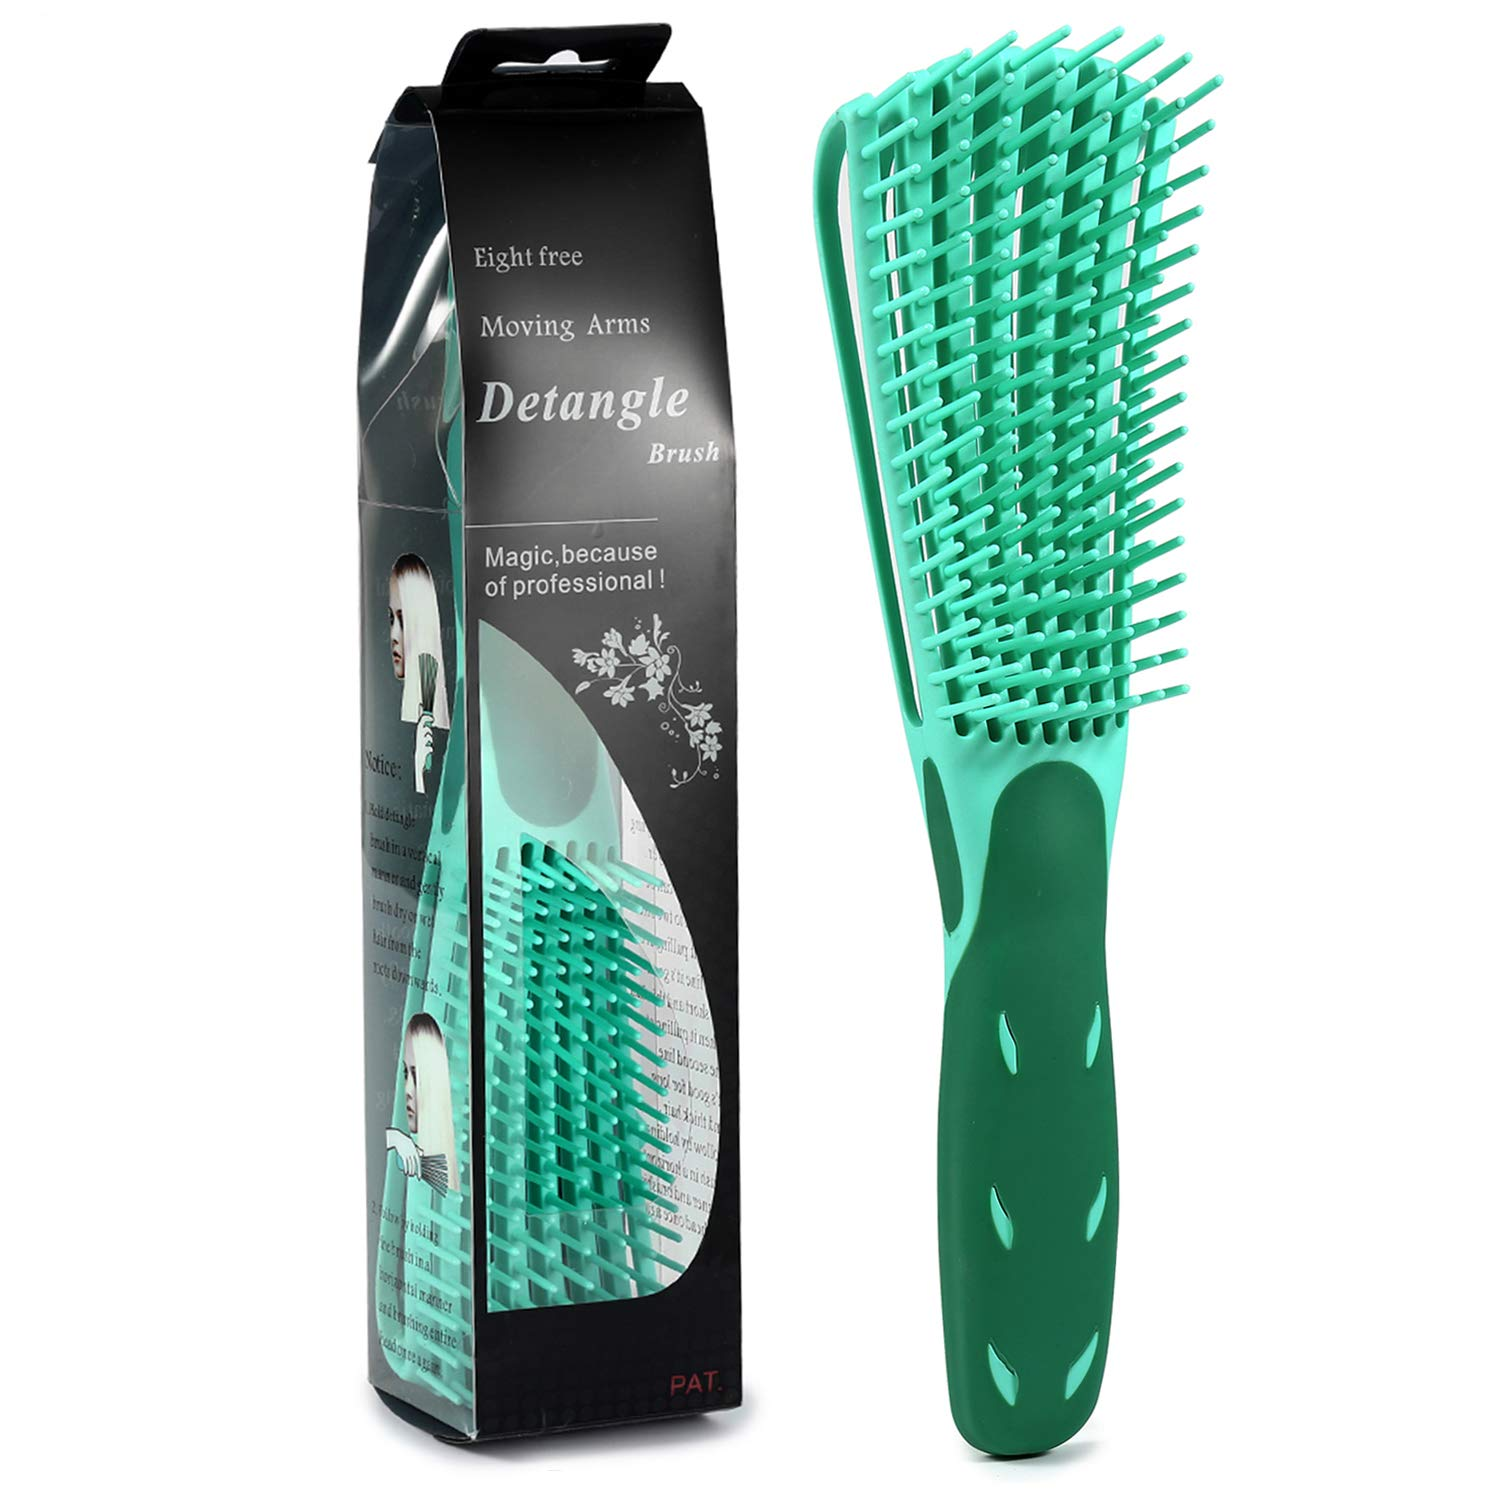 BESTOOL Detangling Brush for Natural Hair-Detangler for Afro America 3a to 4c Kinky Wavy, Curly, Coily Hair, Detangle Easily with Wet/Dry, Apply Conditioner/Oil - 1 Pack (Green) by BESTOOL